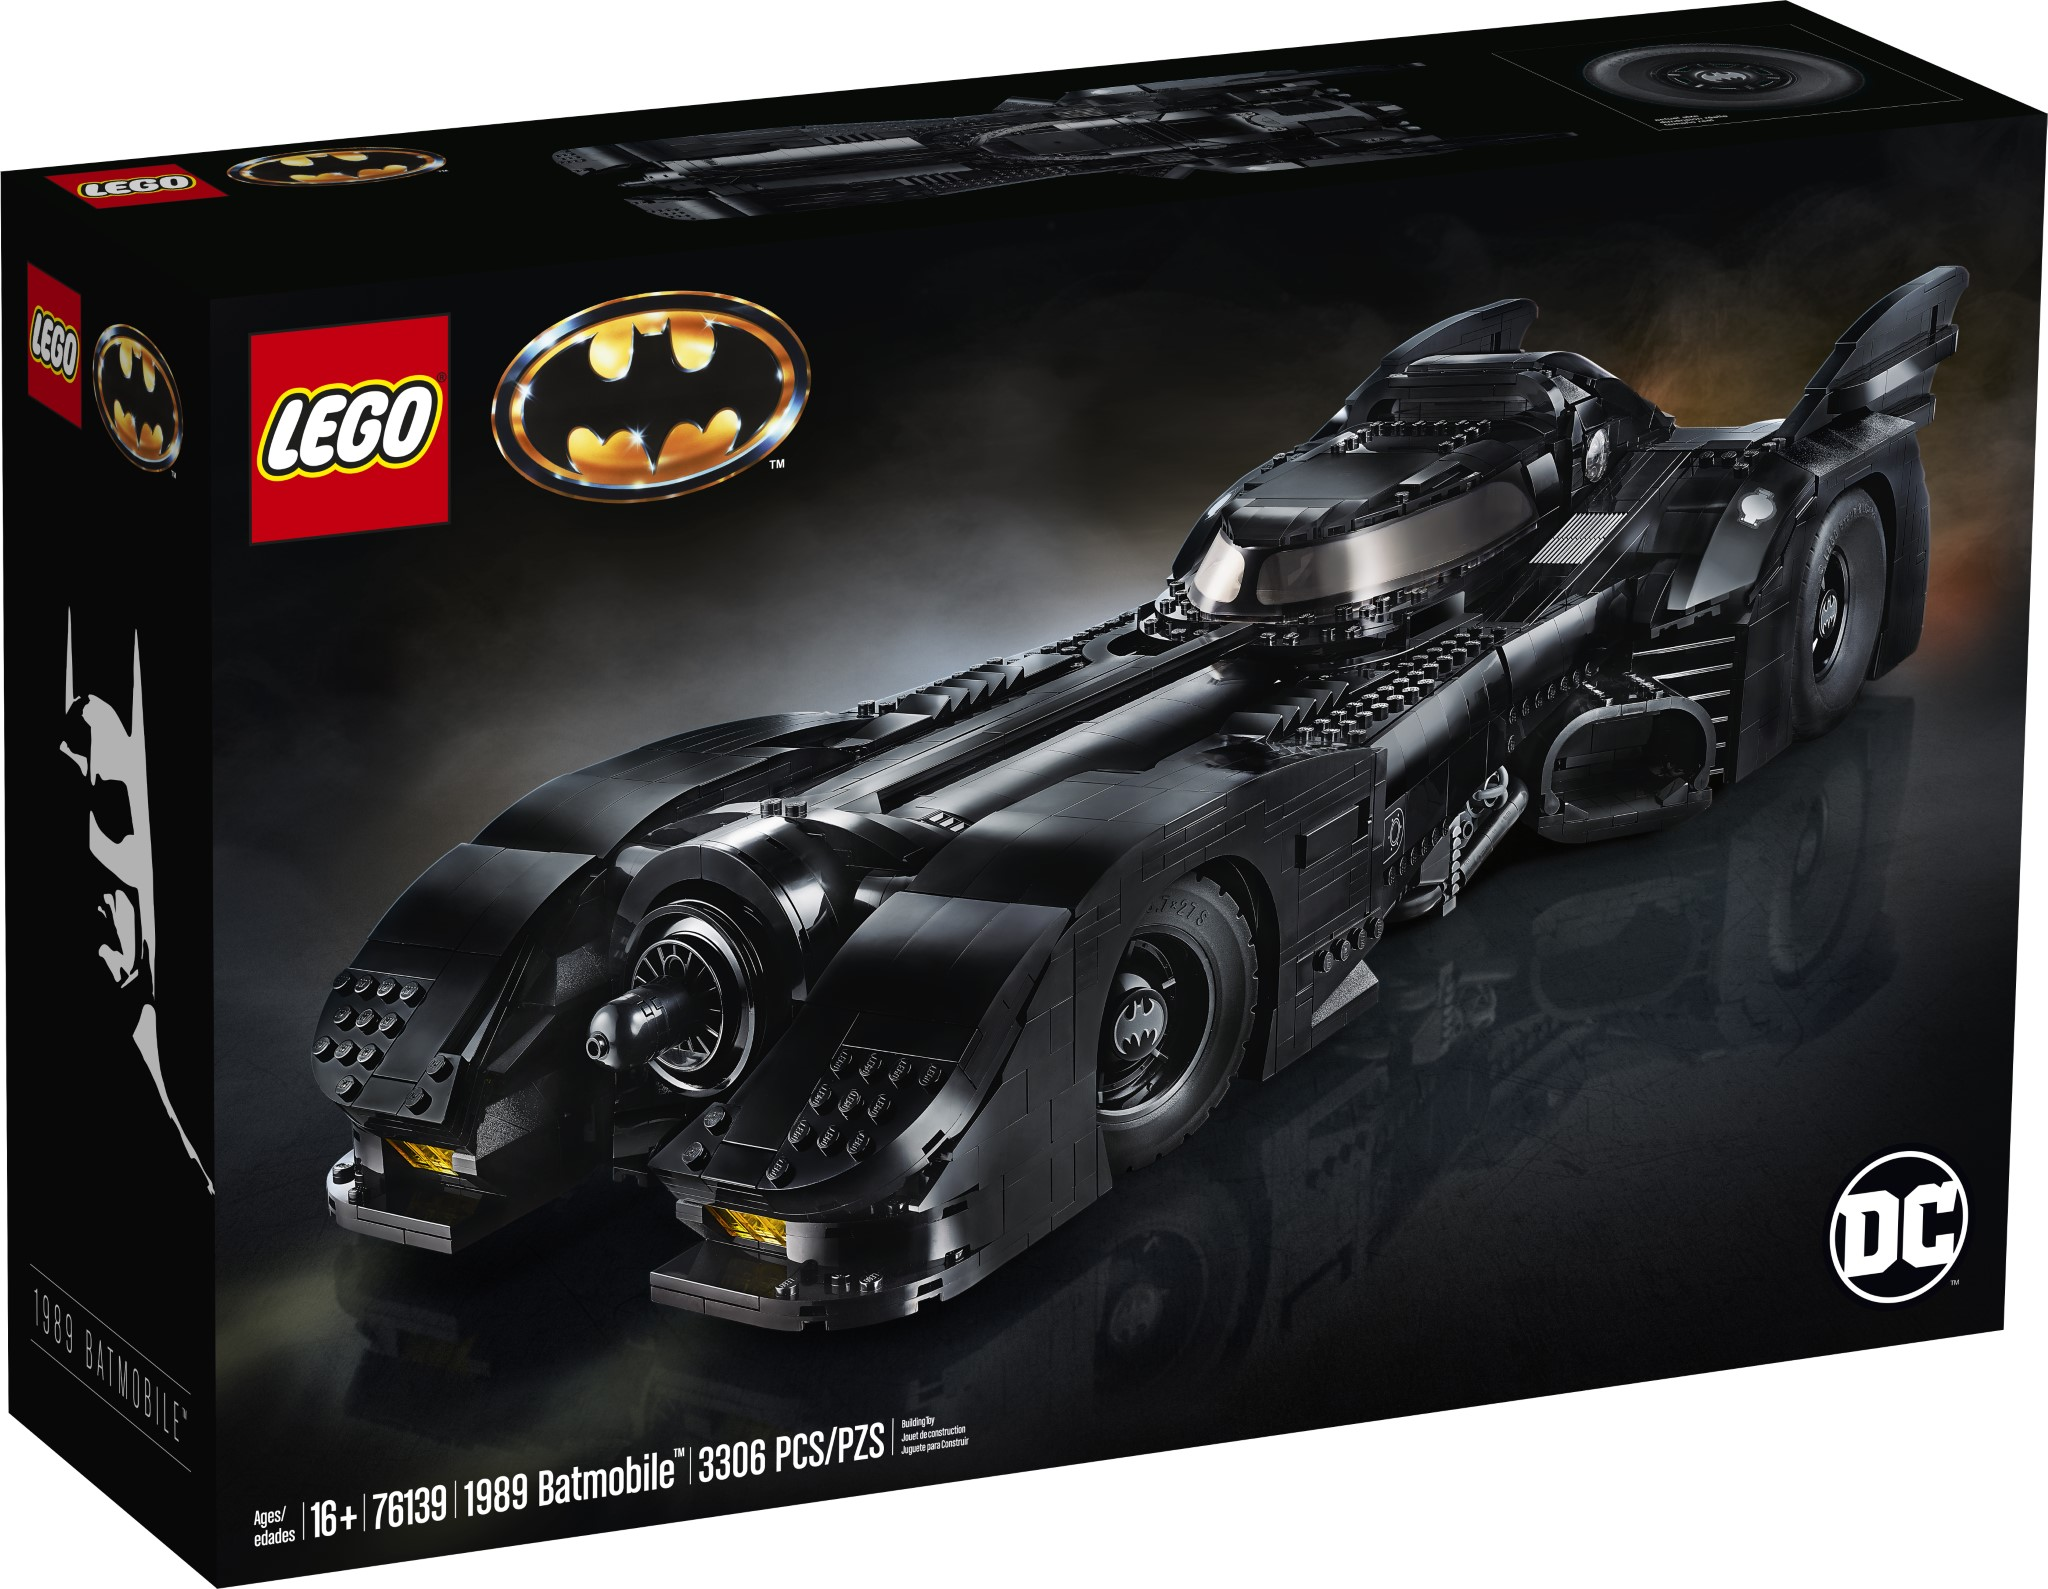 LEGO Batman 1989 Batmobile (76139)